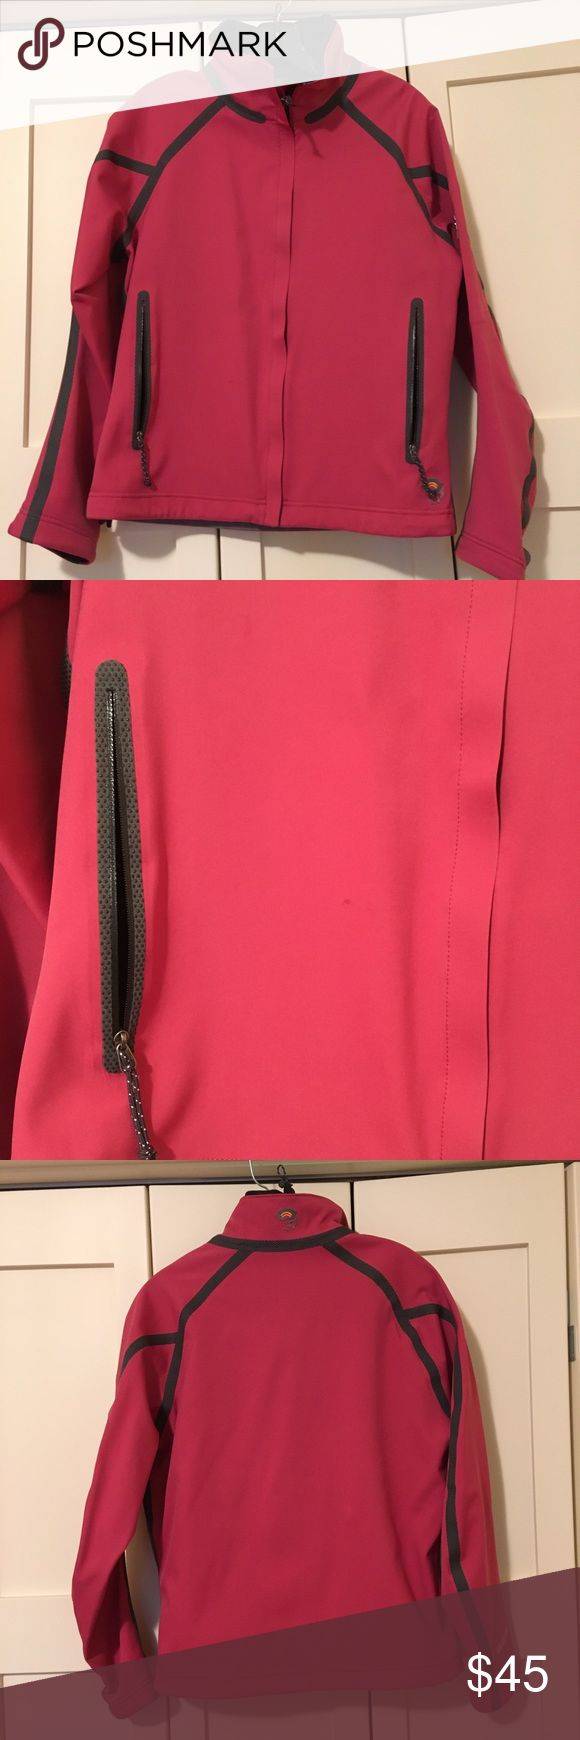 Mountain Hardwear Softshell Jacket Great Mountain Hardwear Conduit Softshell in Size 8. Pinkish/red color. Only worn a few times. Water resistant and a light but warm layer. Small faint mark that may wash out. See close up. Mountain Hardwear Jackets & Coats